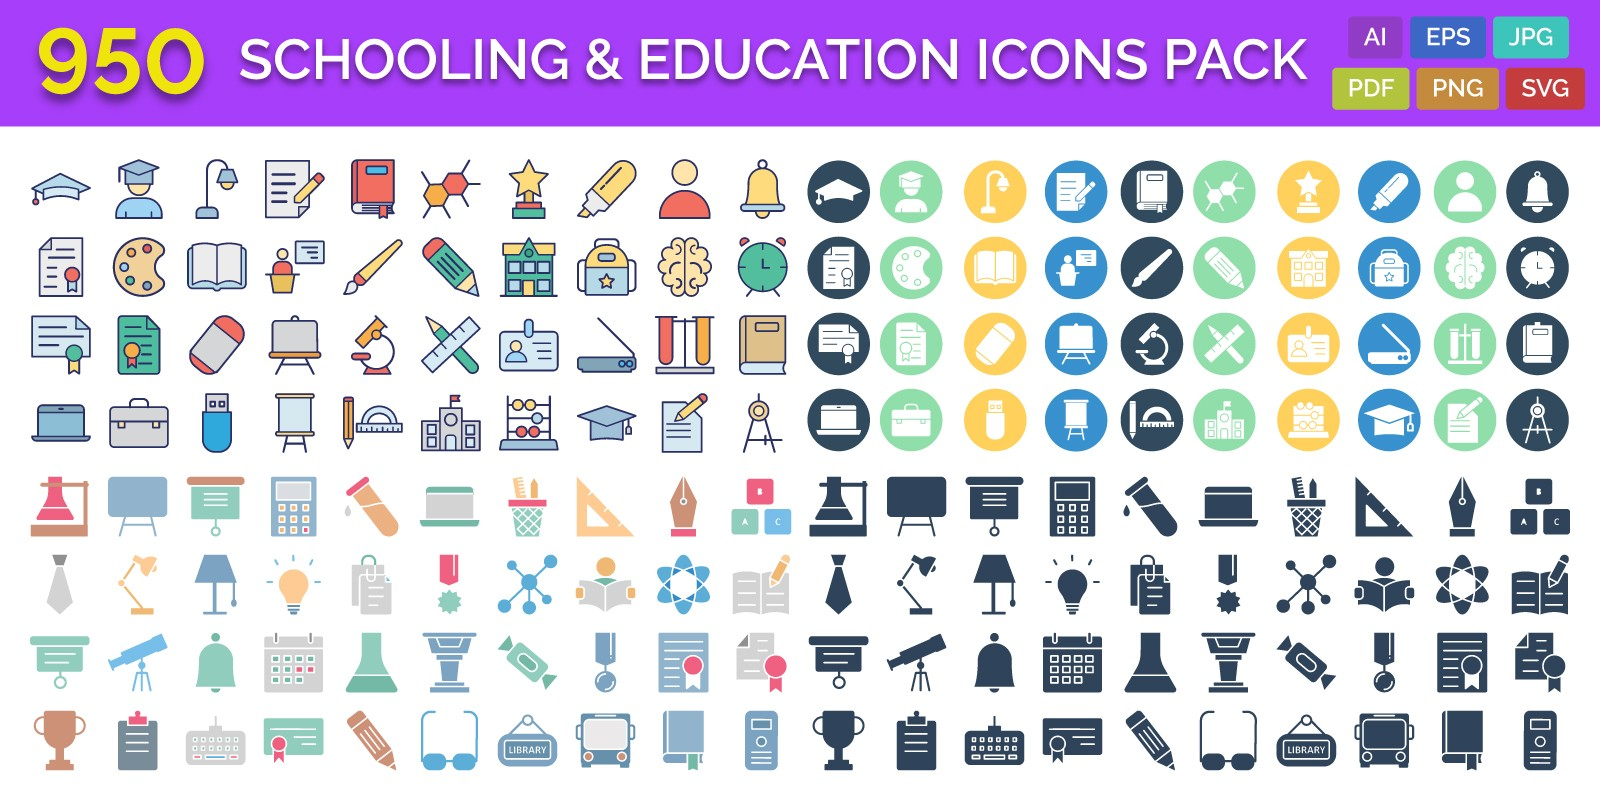 950 Schooling And Education Vector Icons Pack